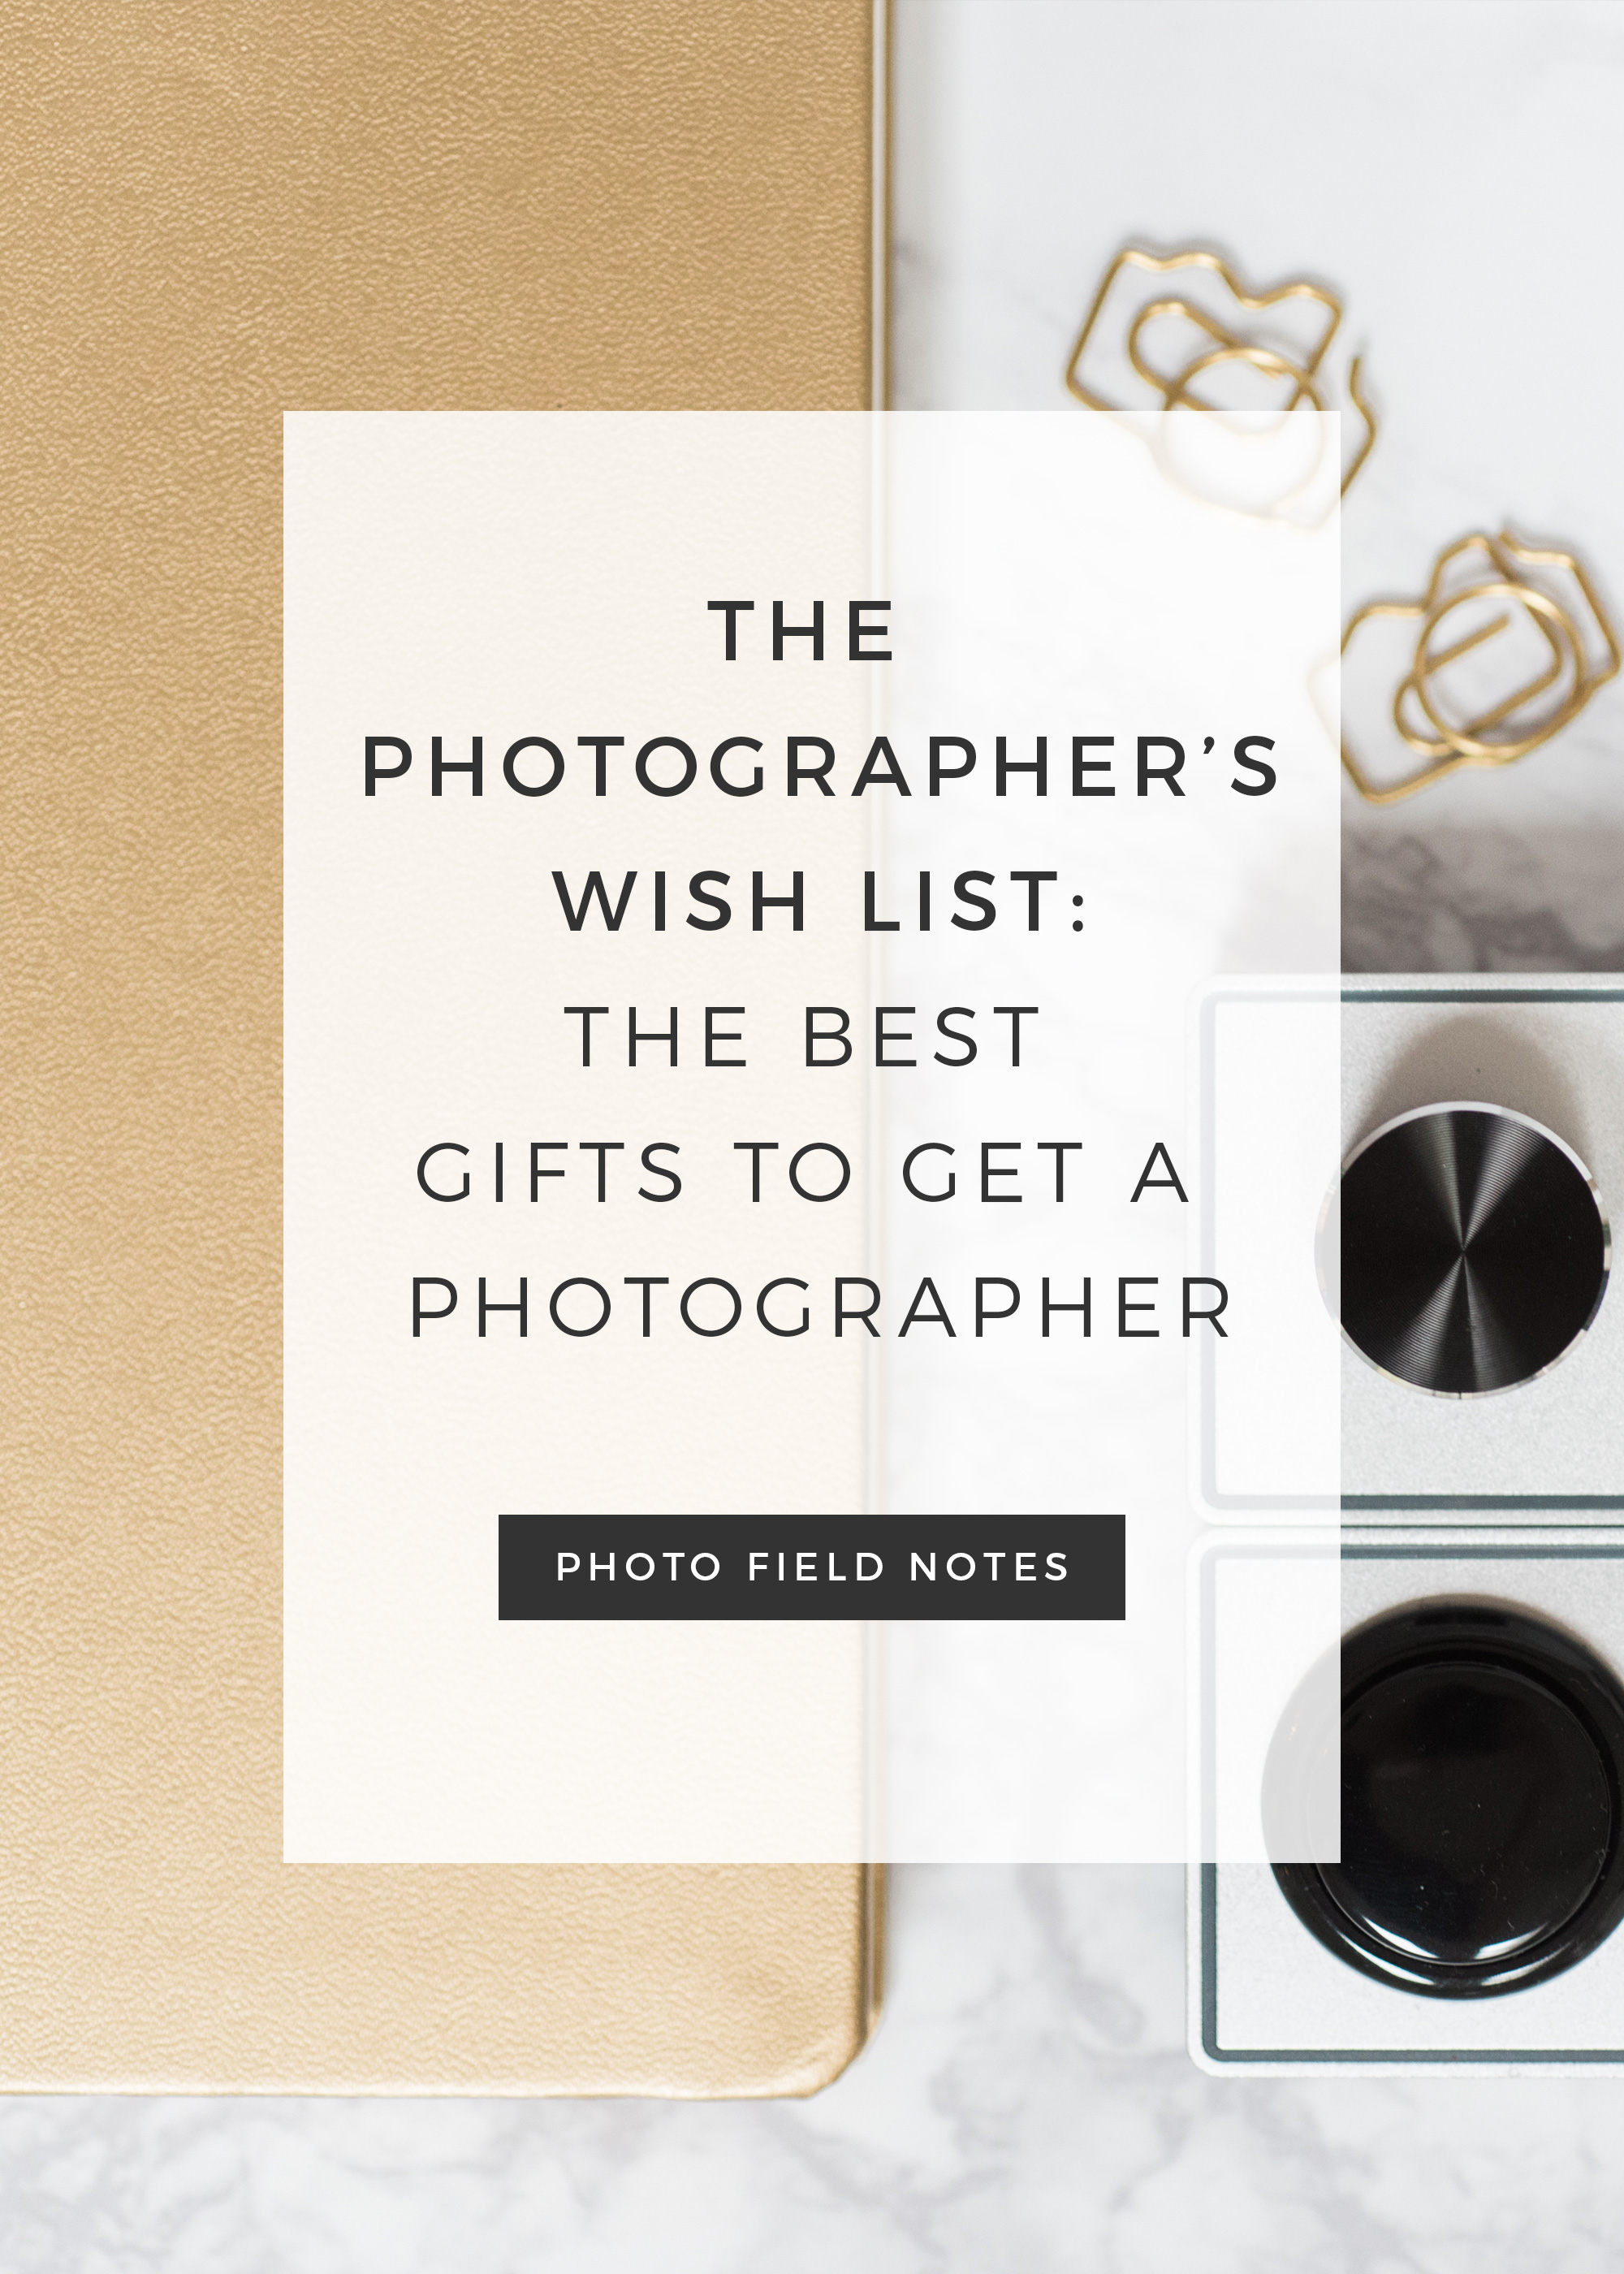 Gifts Photographers The Photographers Wish List The Best Gifts To Get A